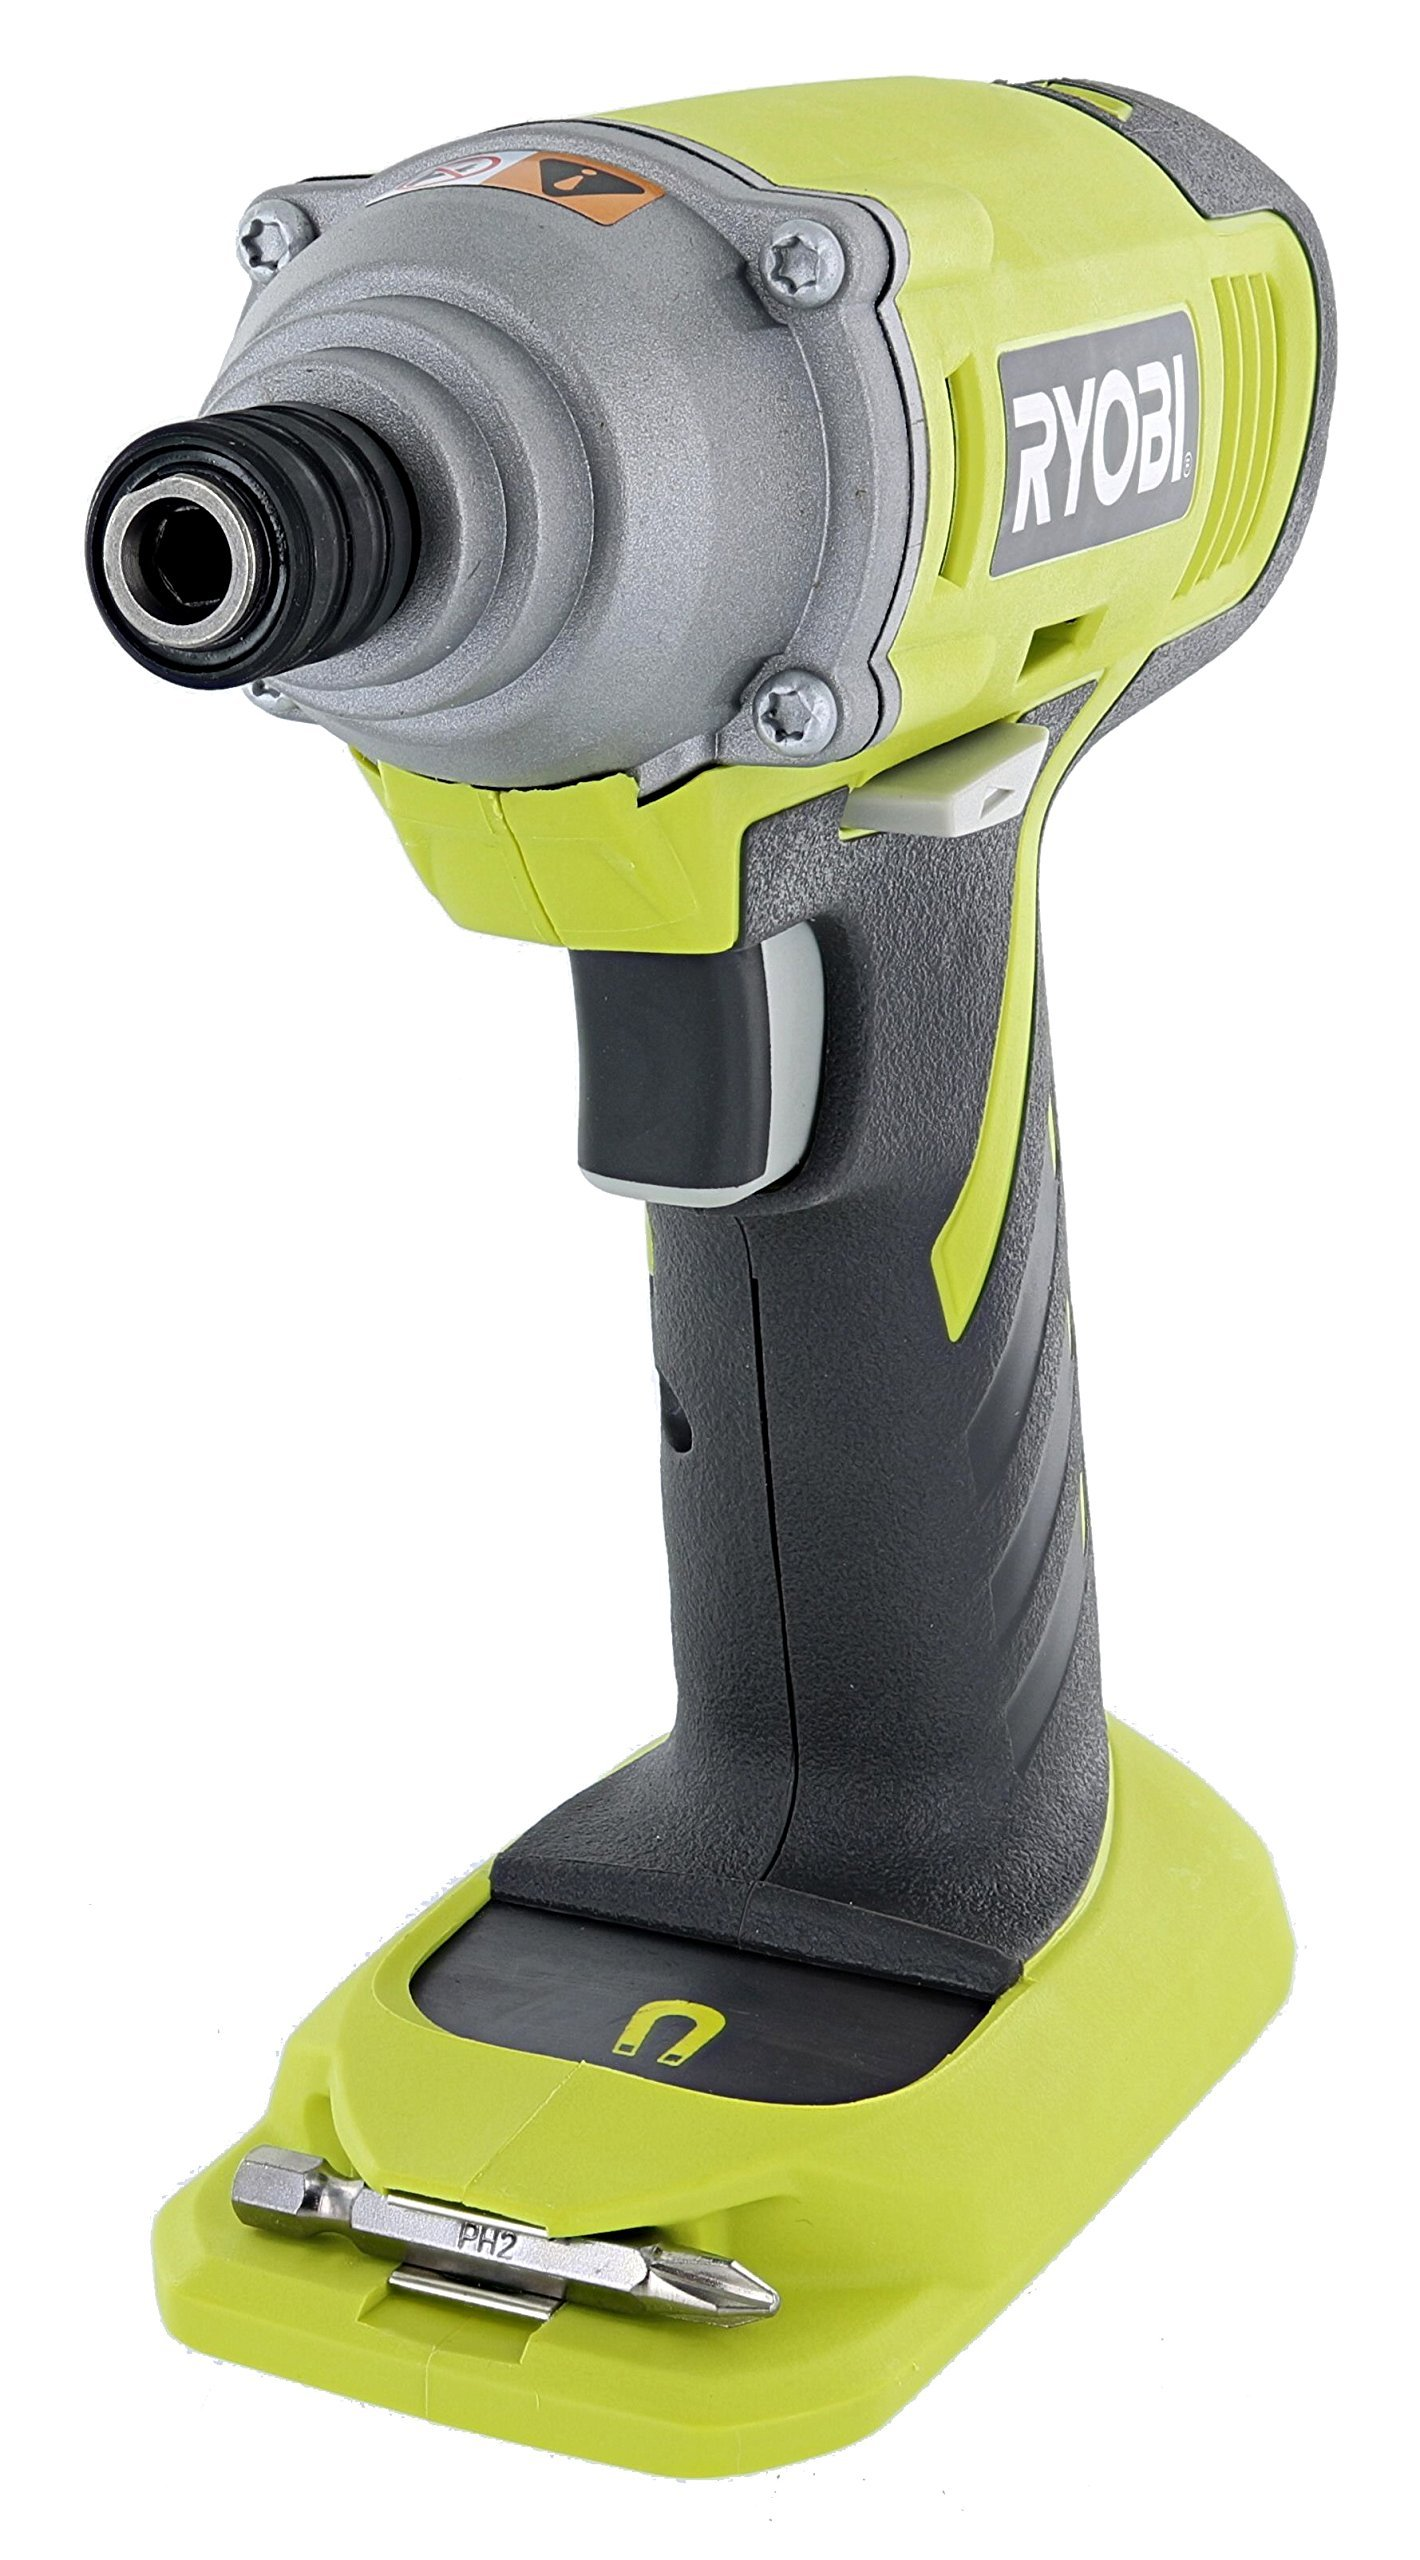 Ryobi P234g One+ 18-Volt Lithium Ion Cordless Impact Driver (Battery Not Included / Power Tool Only) (Certified Refurbished) by Ryobi (Image #4)